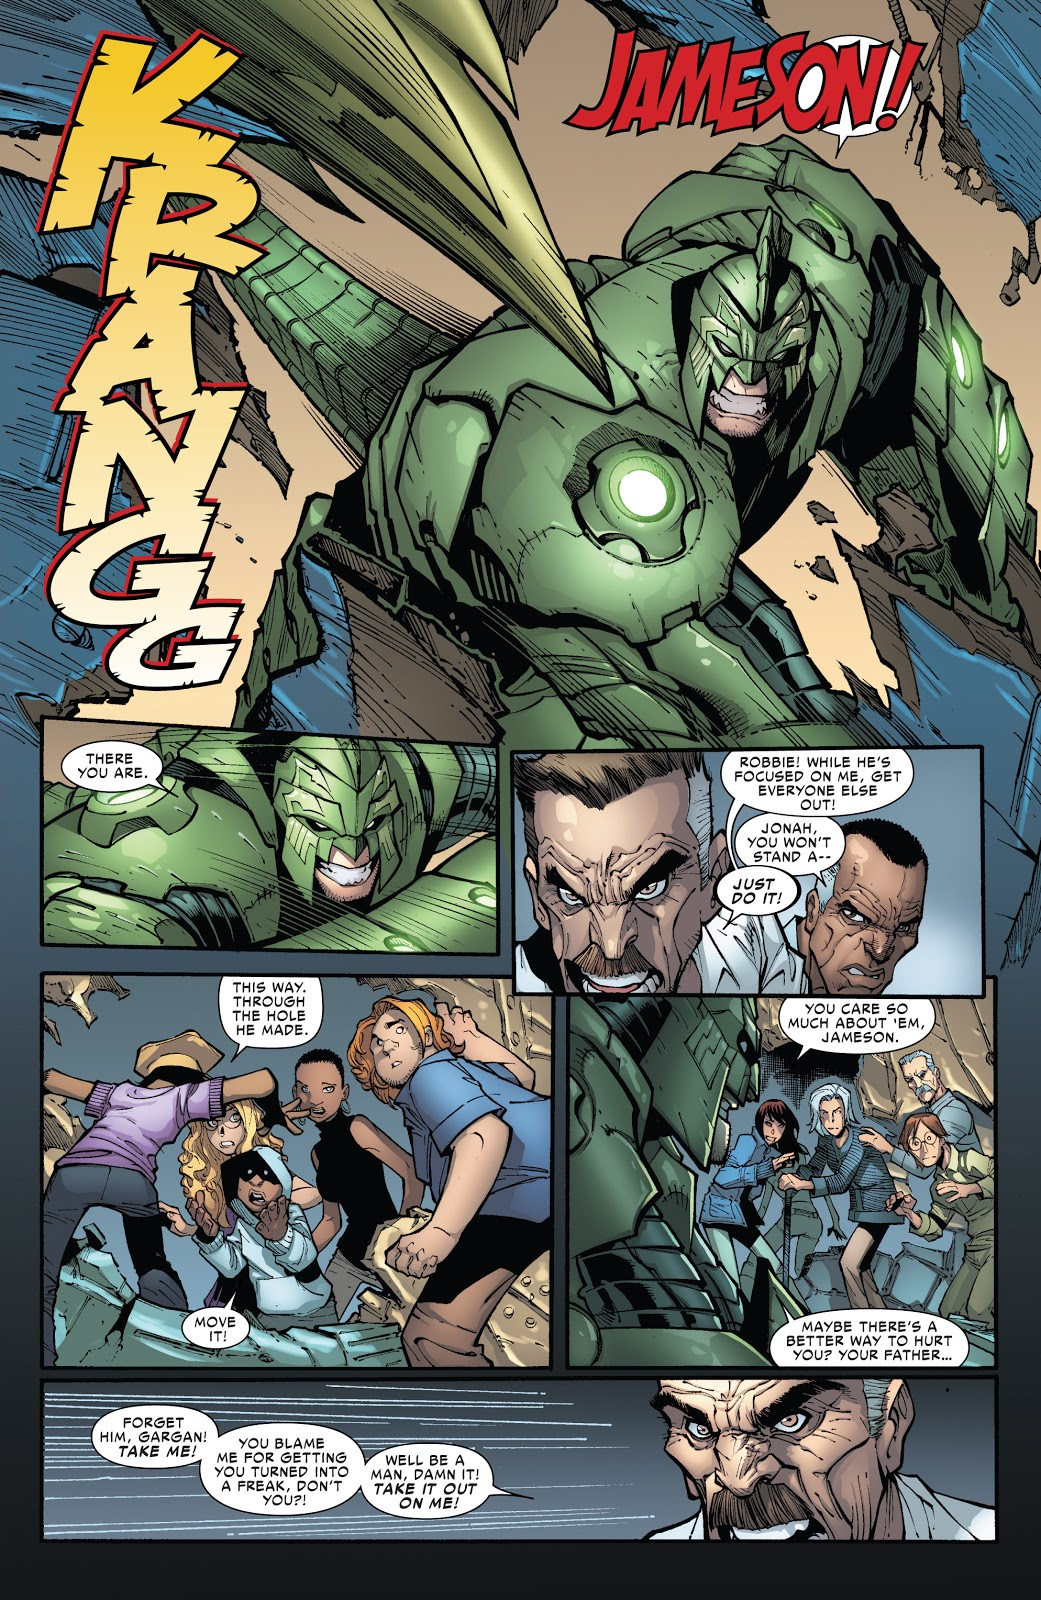 Superior Spider-Man Punches The Scorpion's Jaw Off